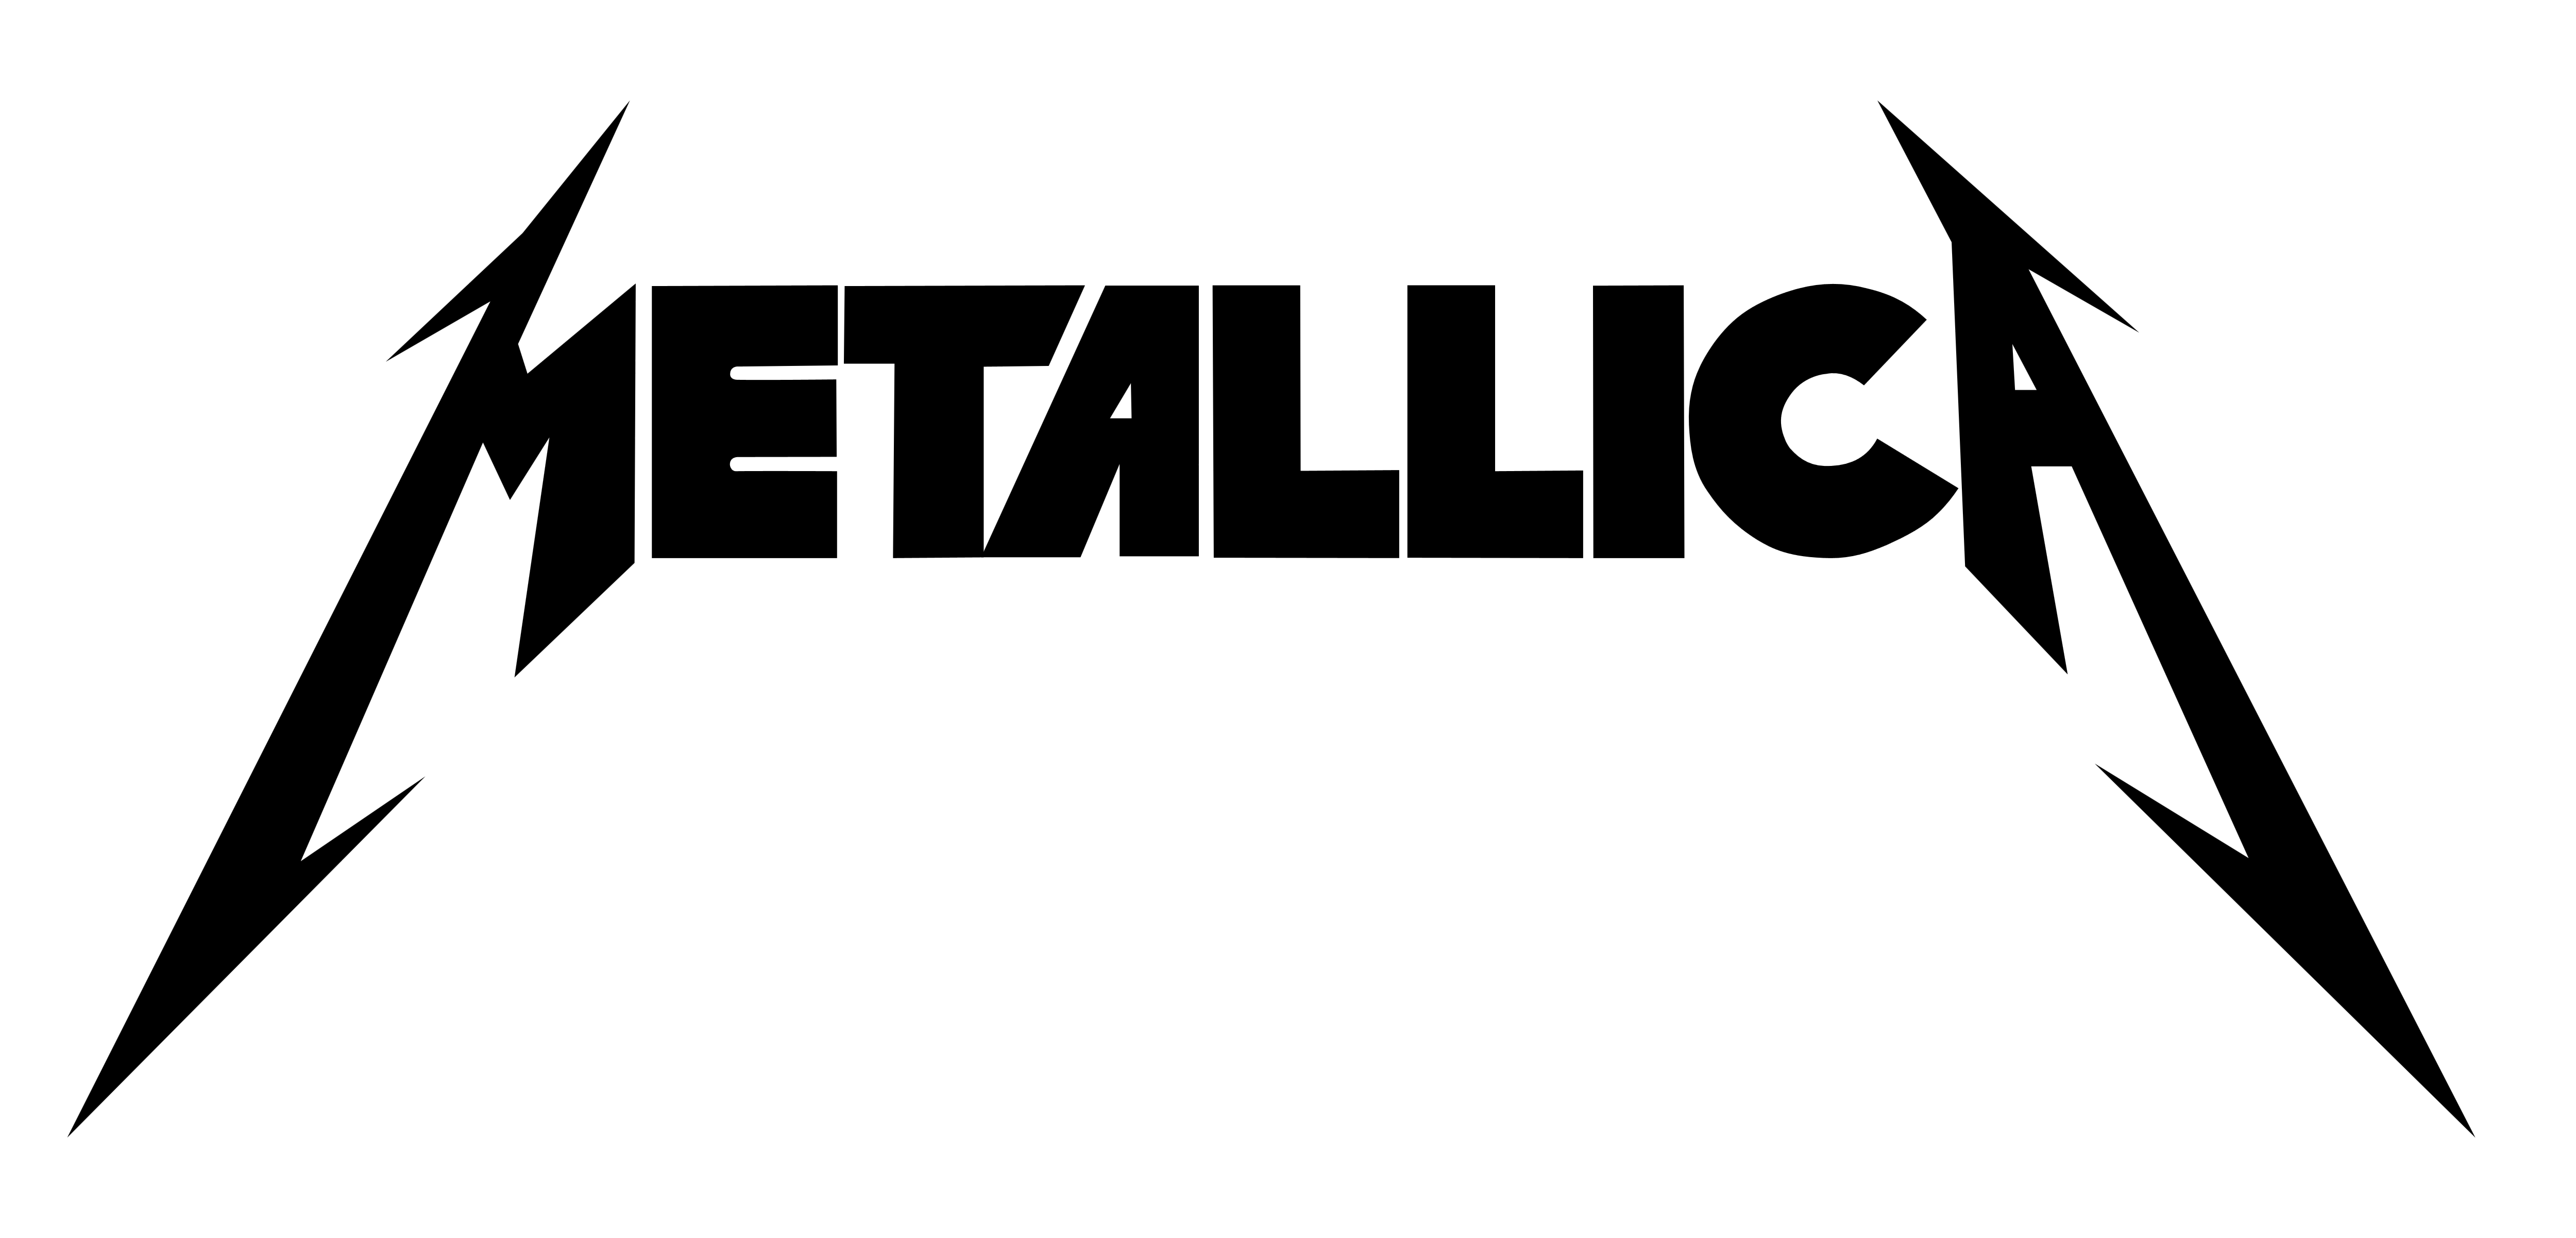 Metallica Logos Download